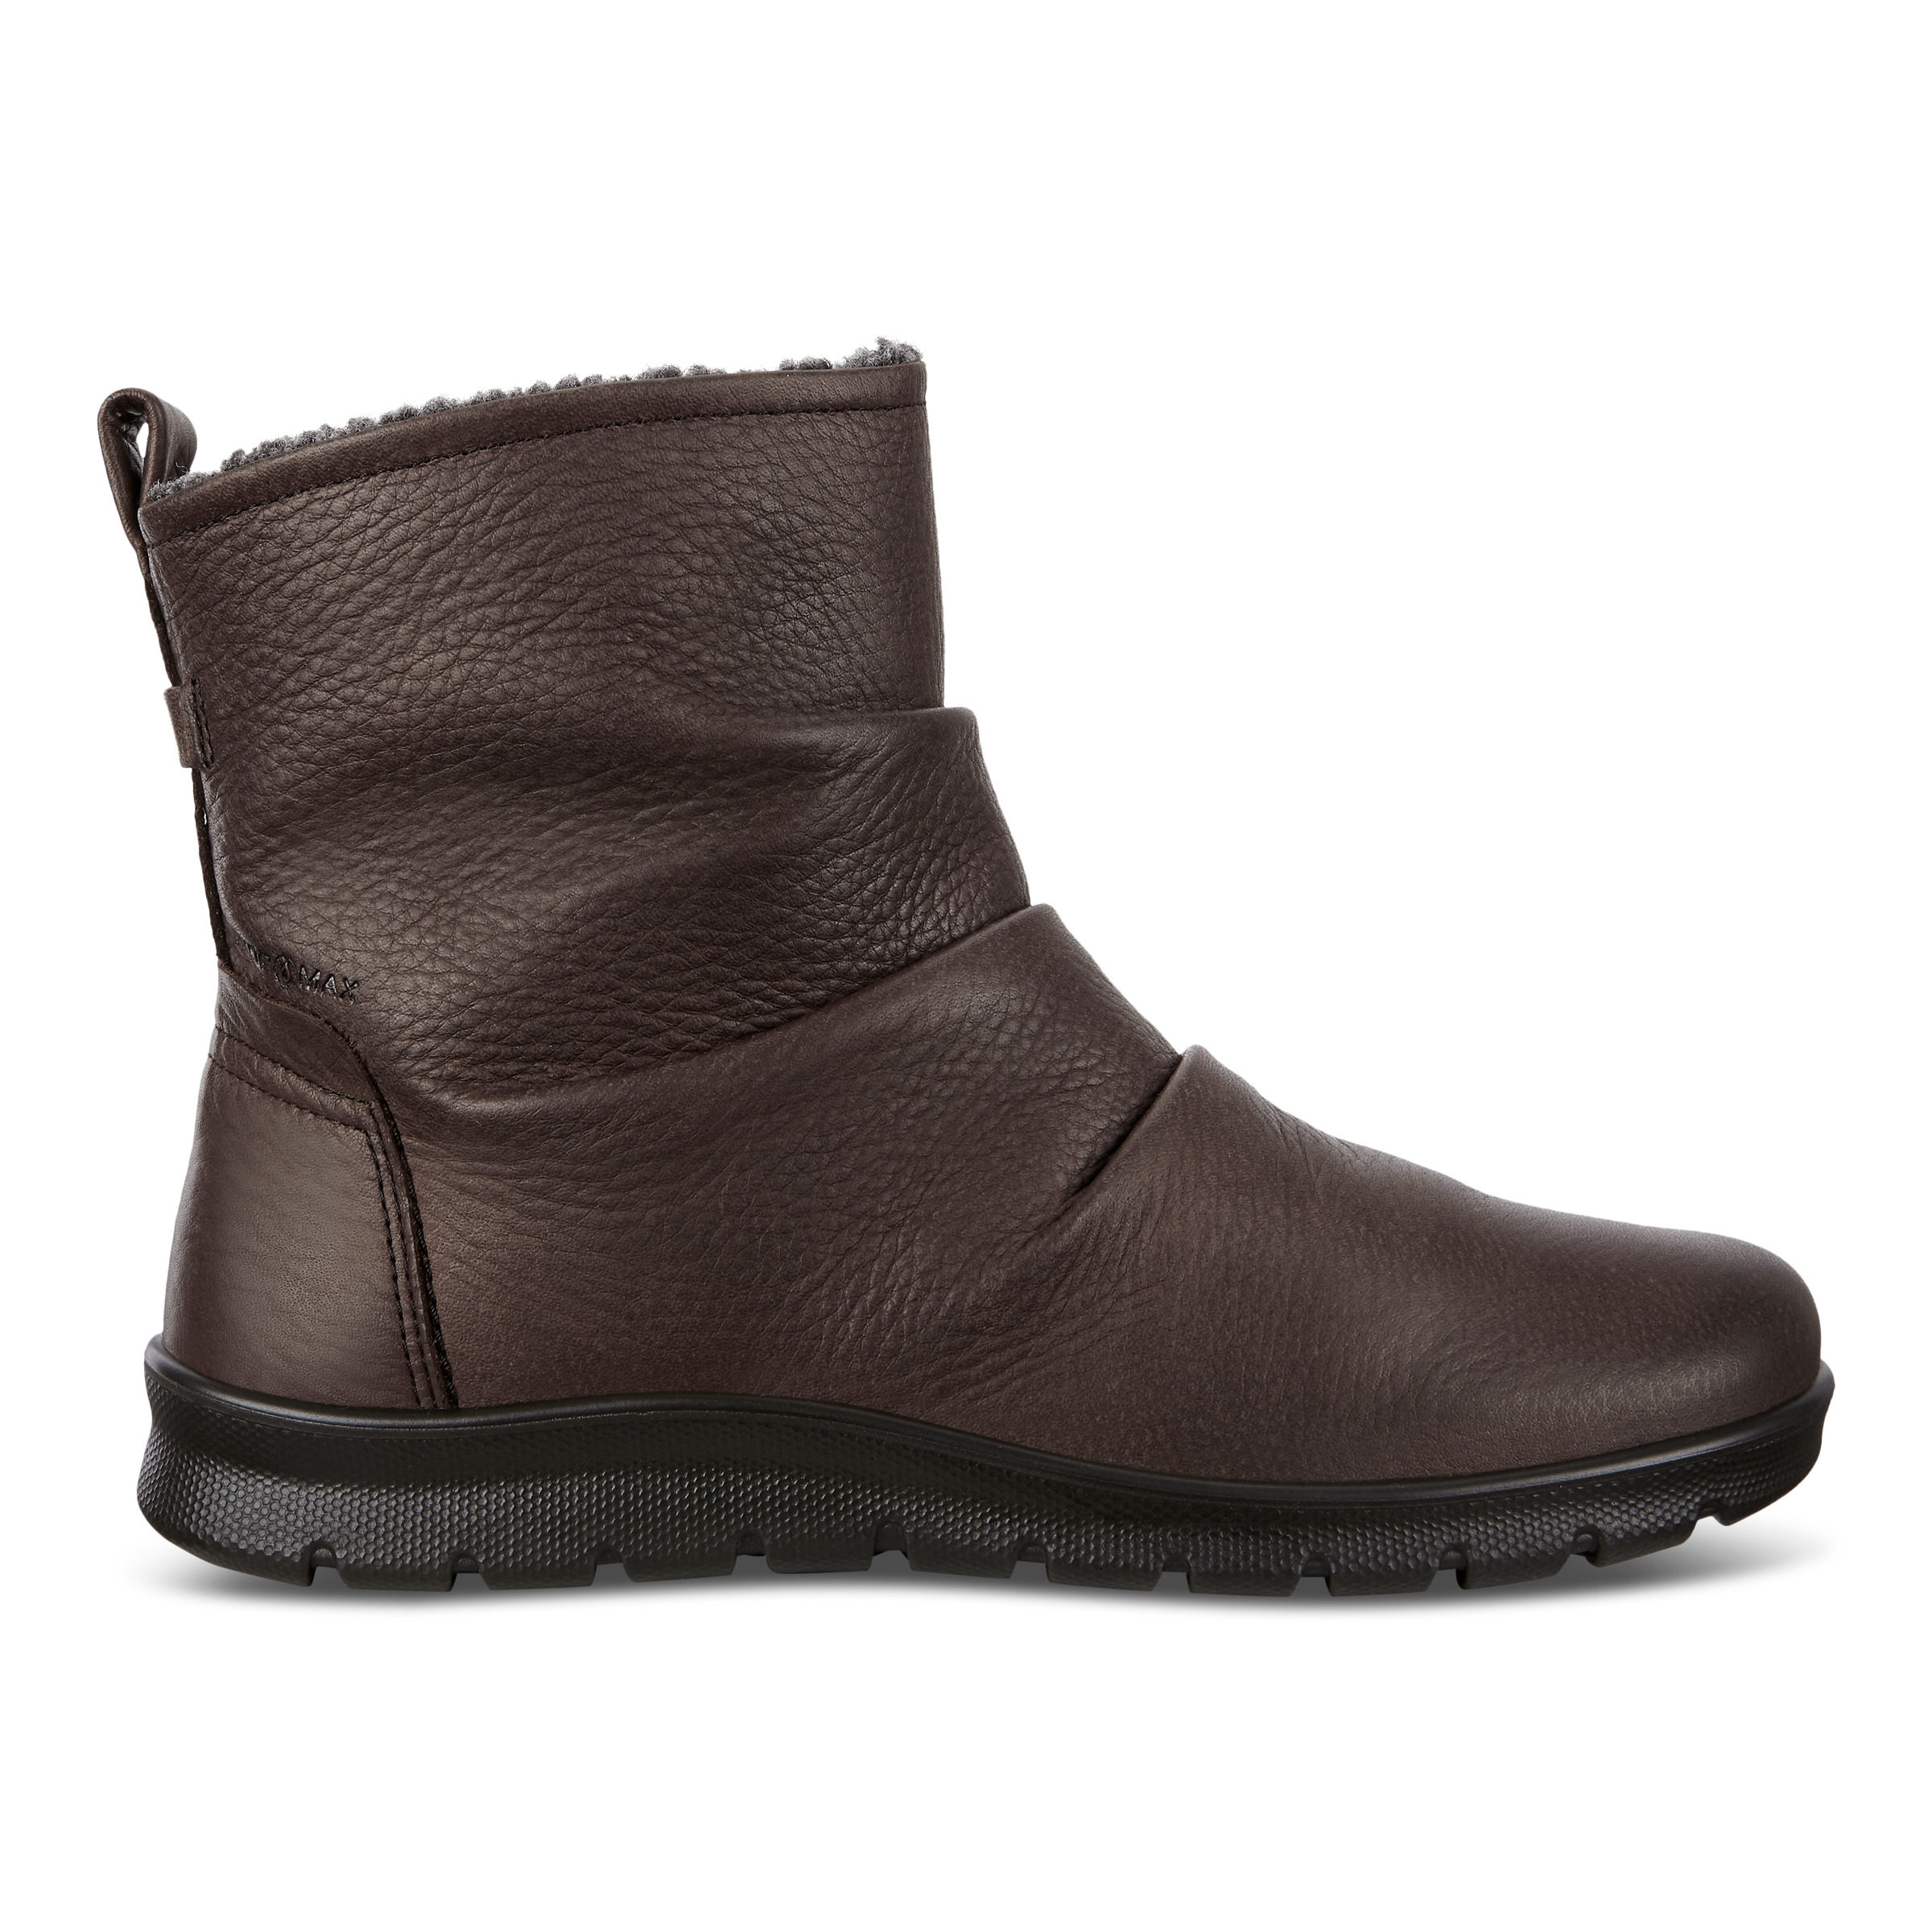 ECCO Babett Boot Ankle Boot Size 5-5.5 Coffee